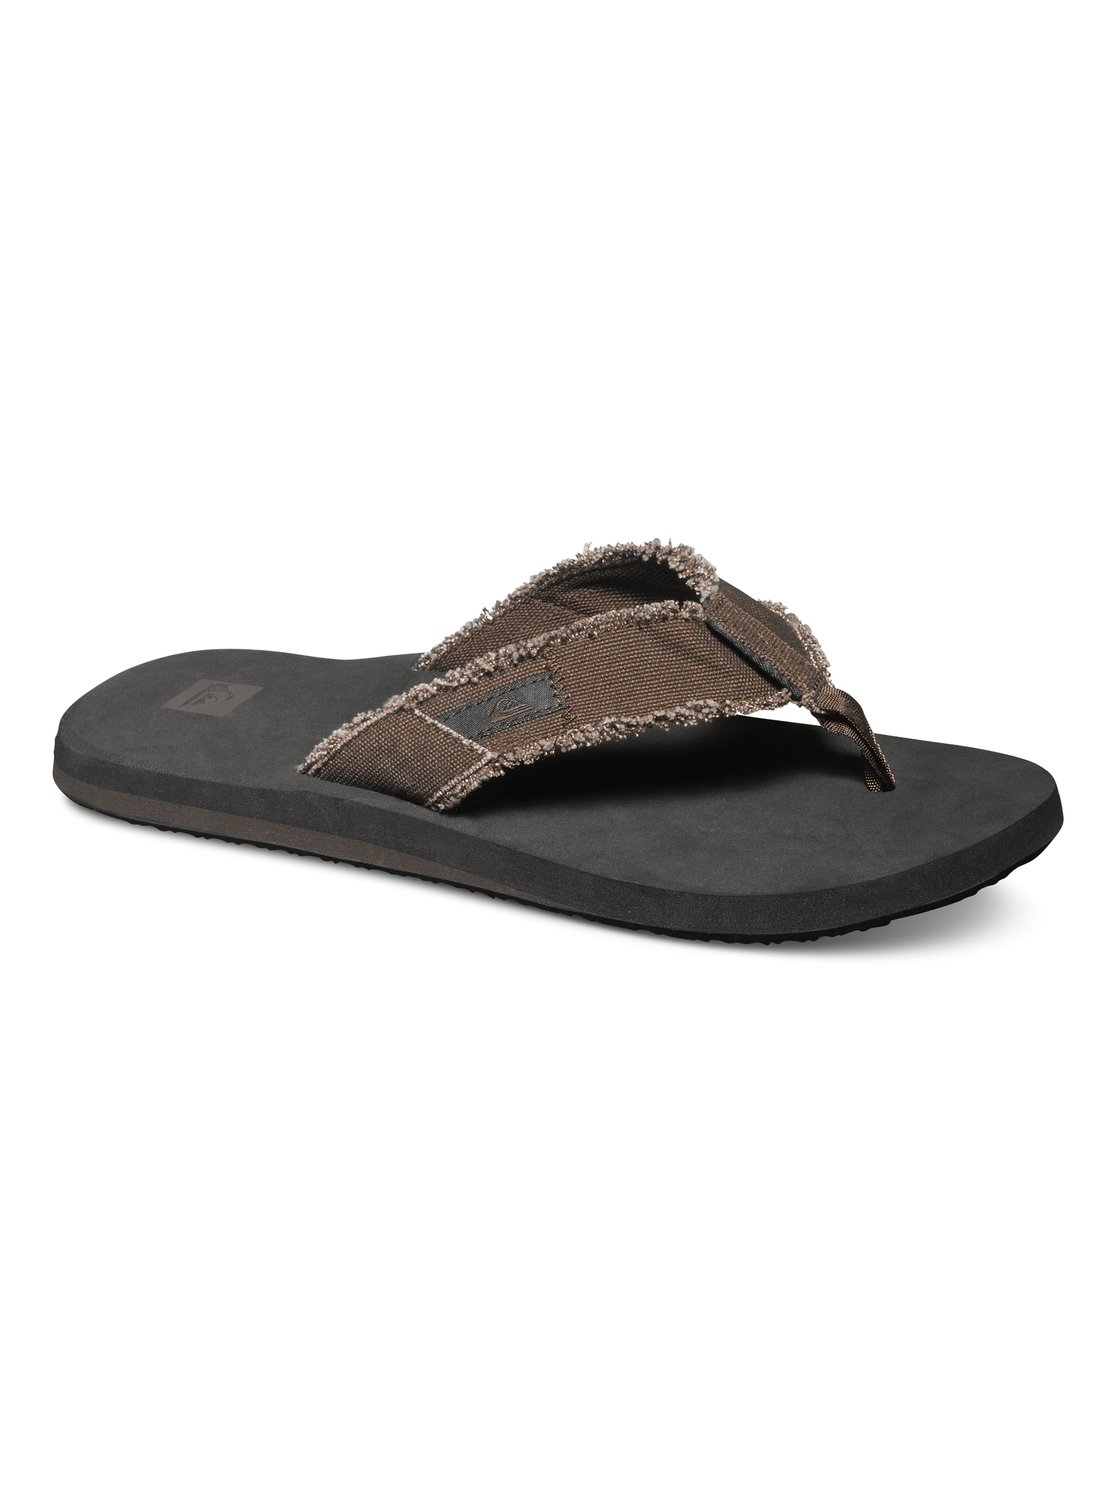 2eafcff02748 1 Monkey Abyss - Sandals for Men Brown AQYL100047 Quiksilver